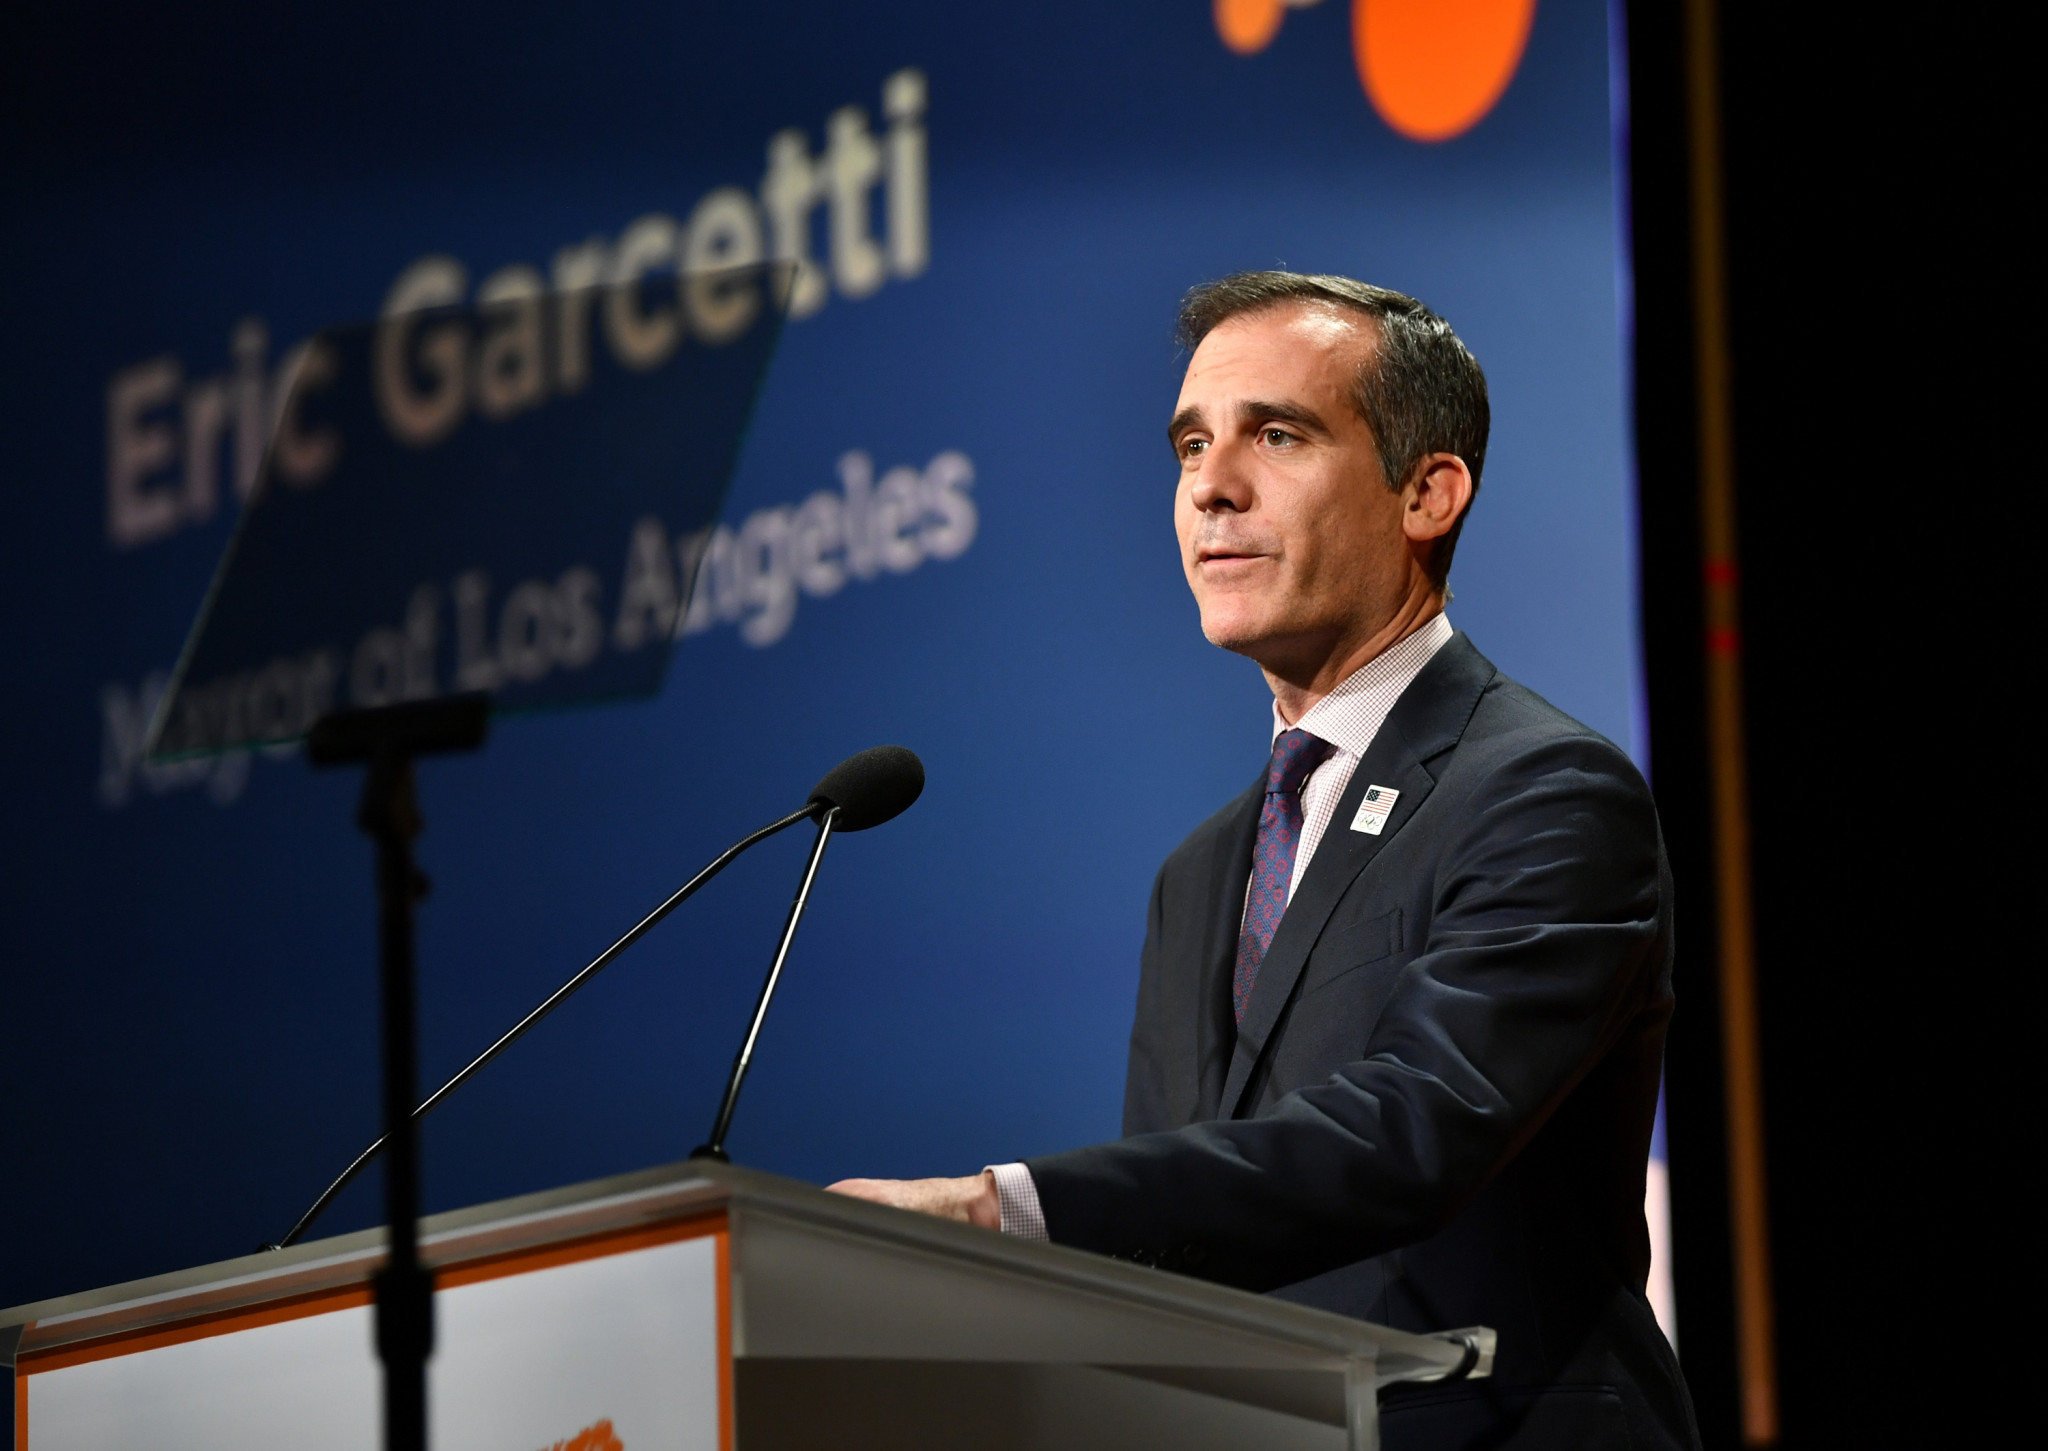 Los Angeles Mayor Eric Garcetti has claimed the donation was a extraordinary investment ©Getty Images